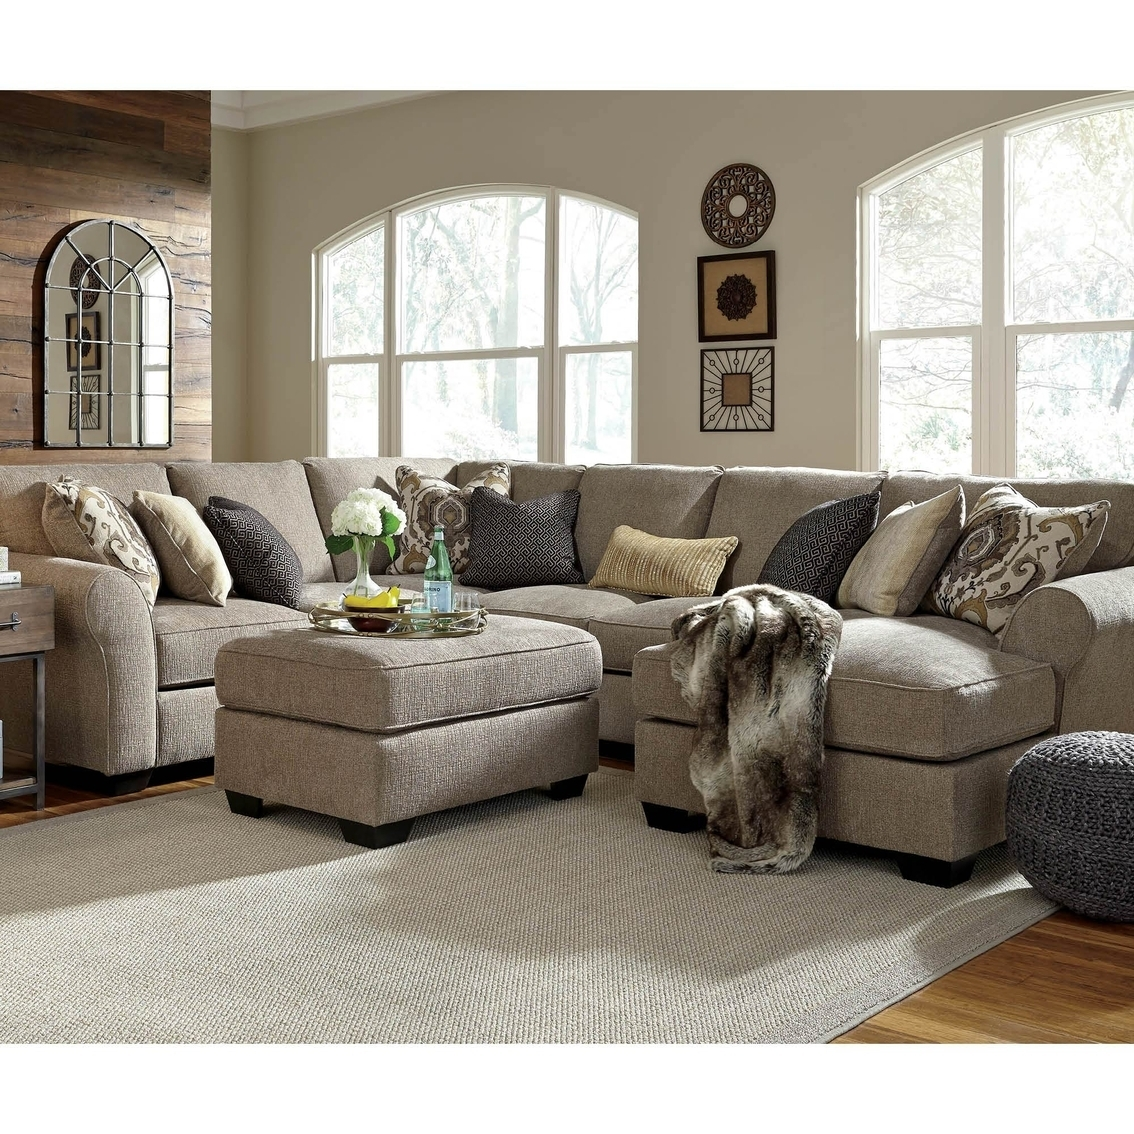 Laf Sofa Raf Loveseat | Baci Living Room Within Turdur 3 Piece Sectionals With Laf Loveseat (View 18 of 25)